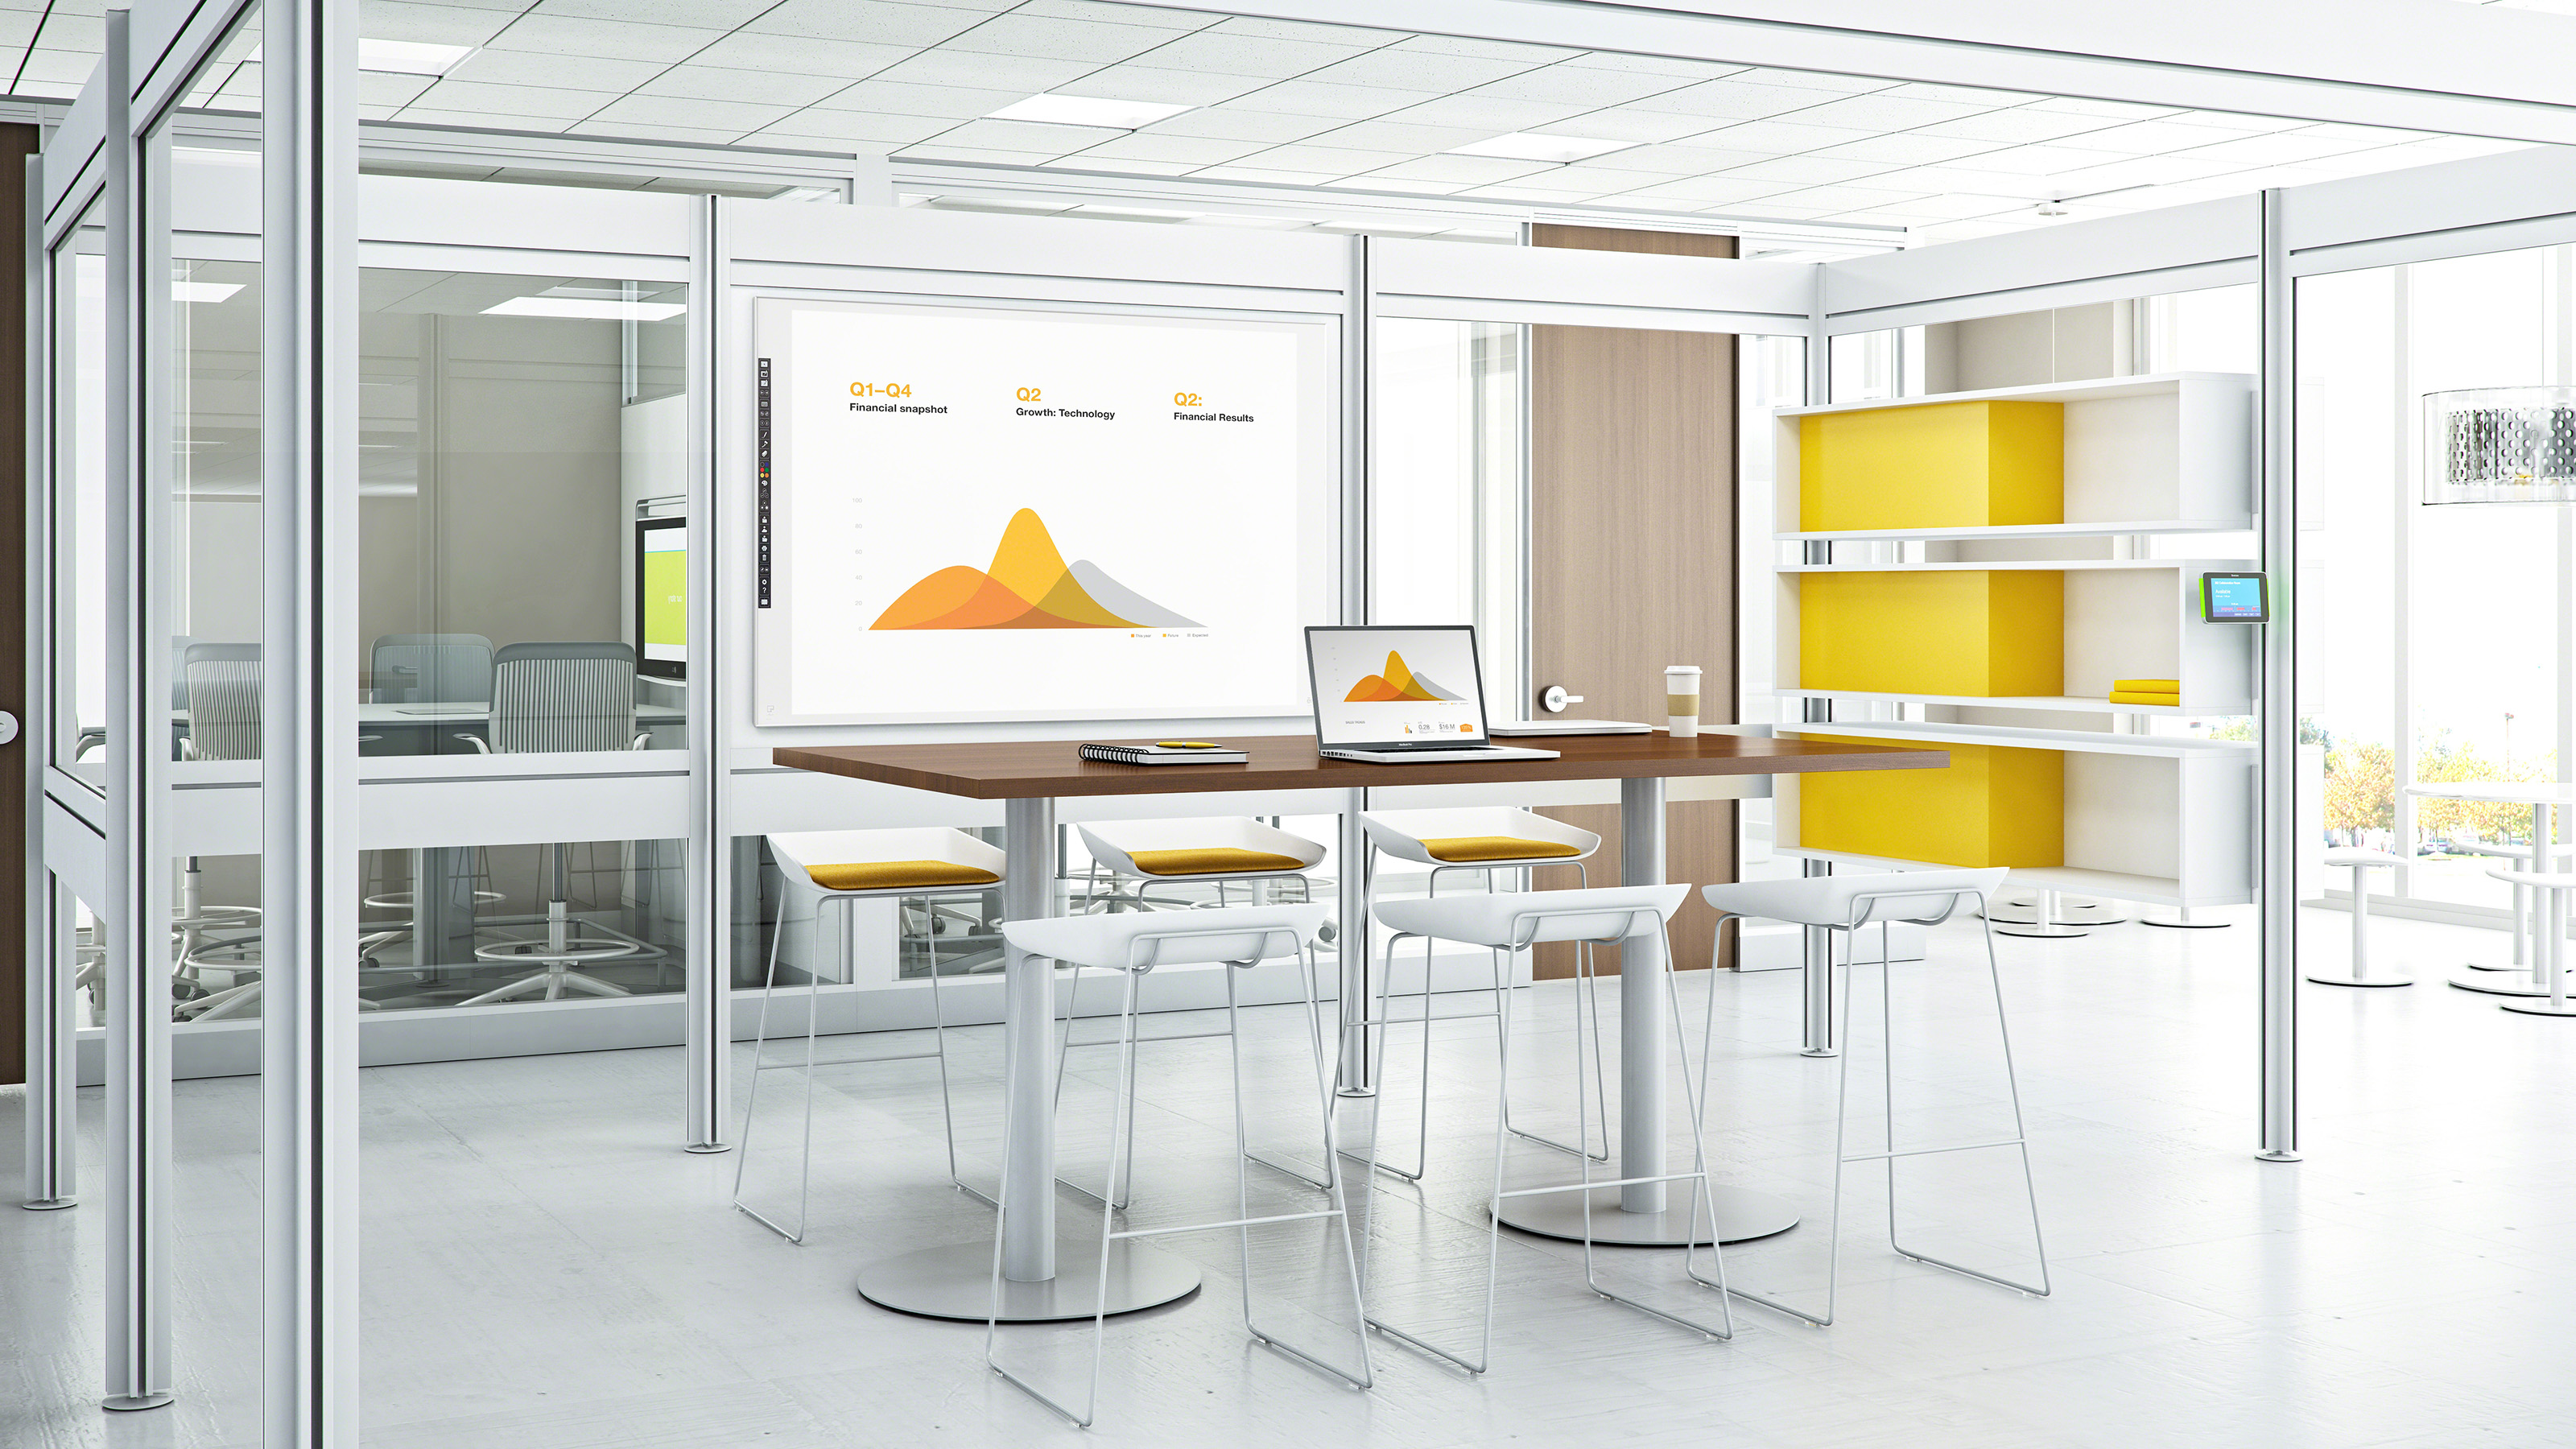 A Post & Beam installation which is a beautiful huddle space in a modern work place. Technology is integrated into the structure and the whole installation can be easily reconfigured quickly.